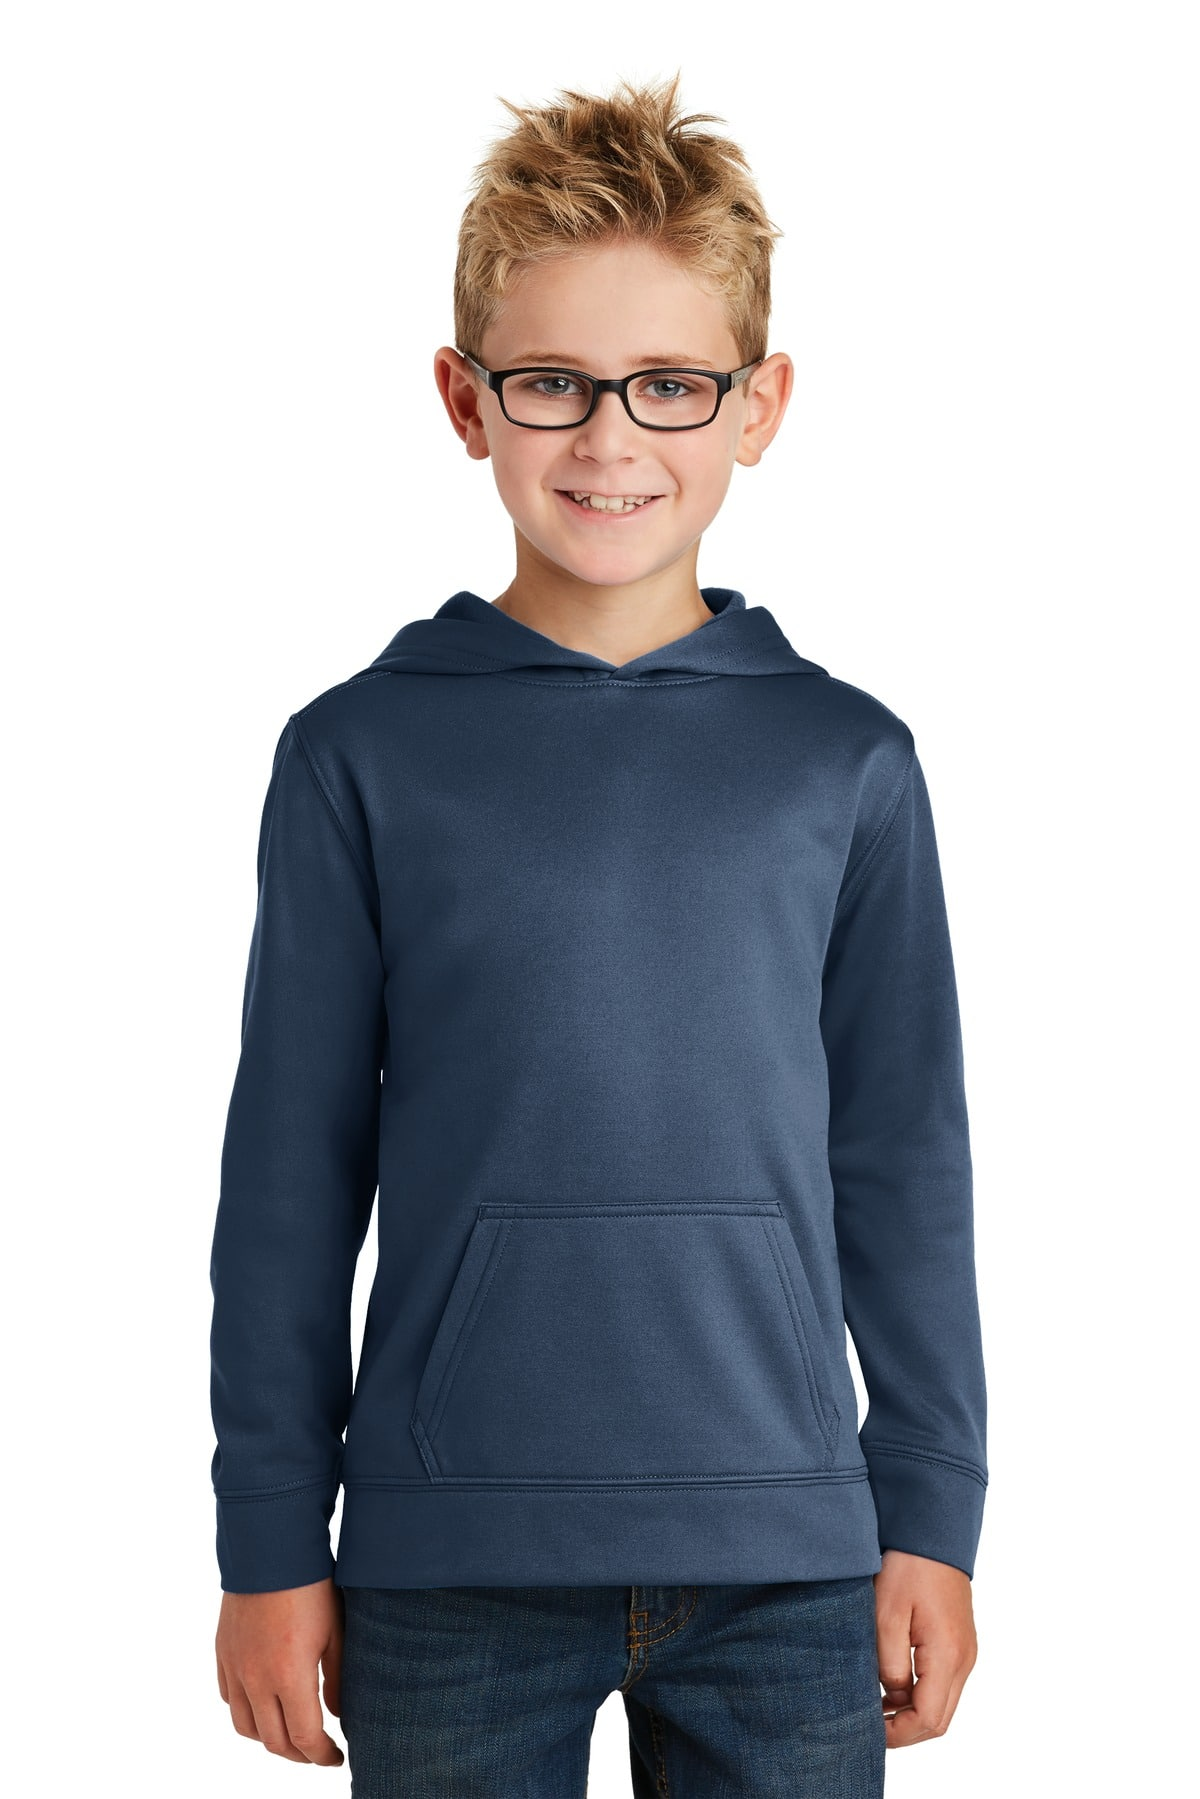 youth hooded sweat shirt